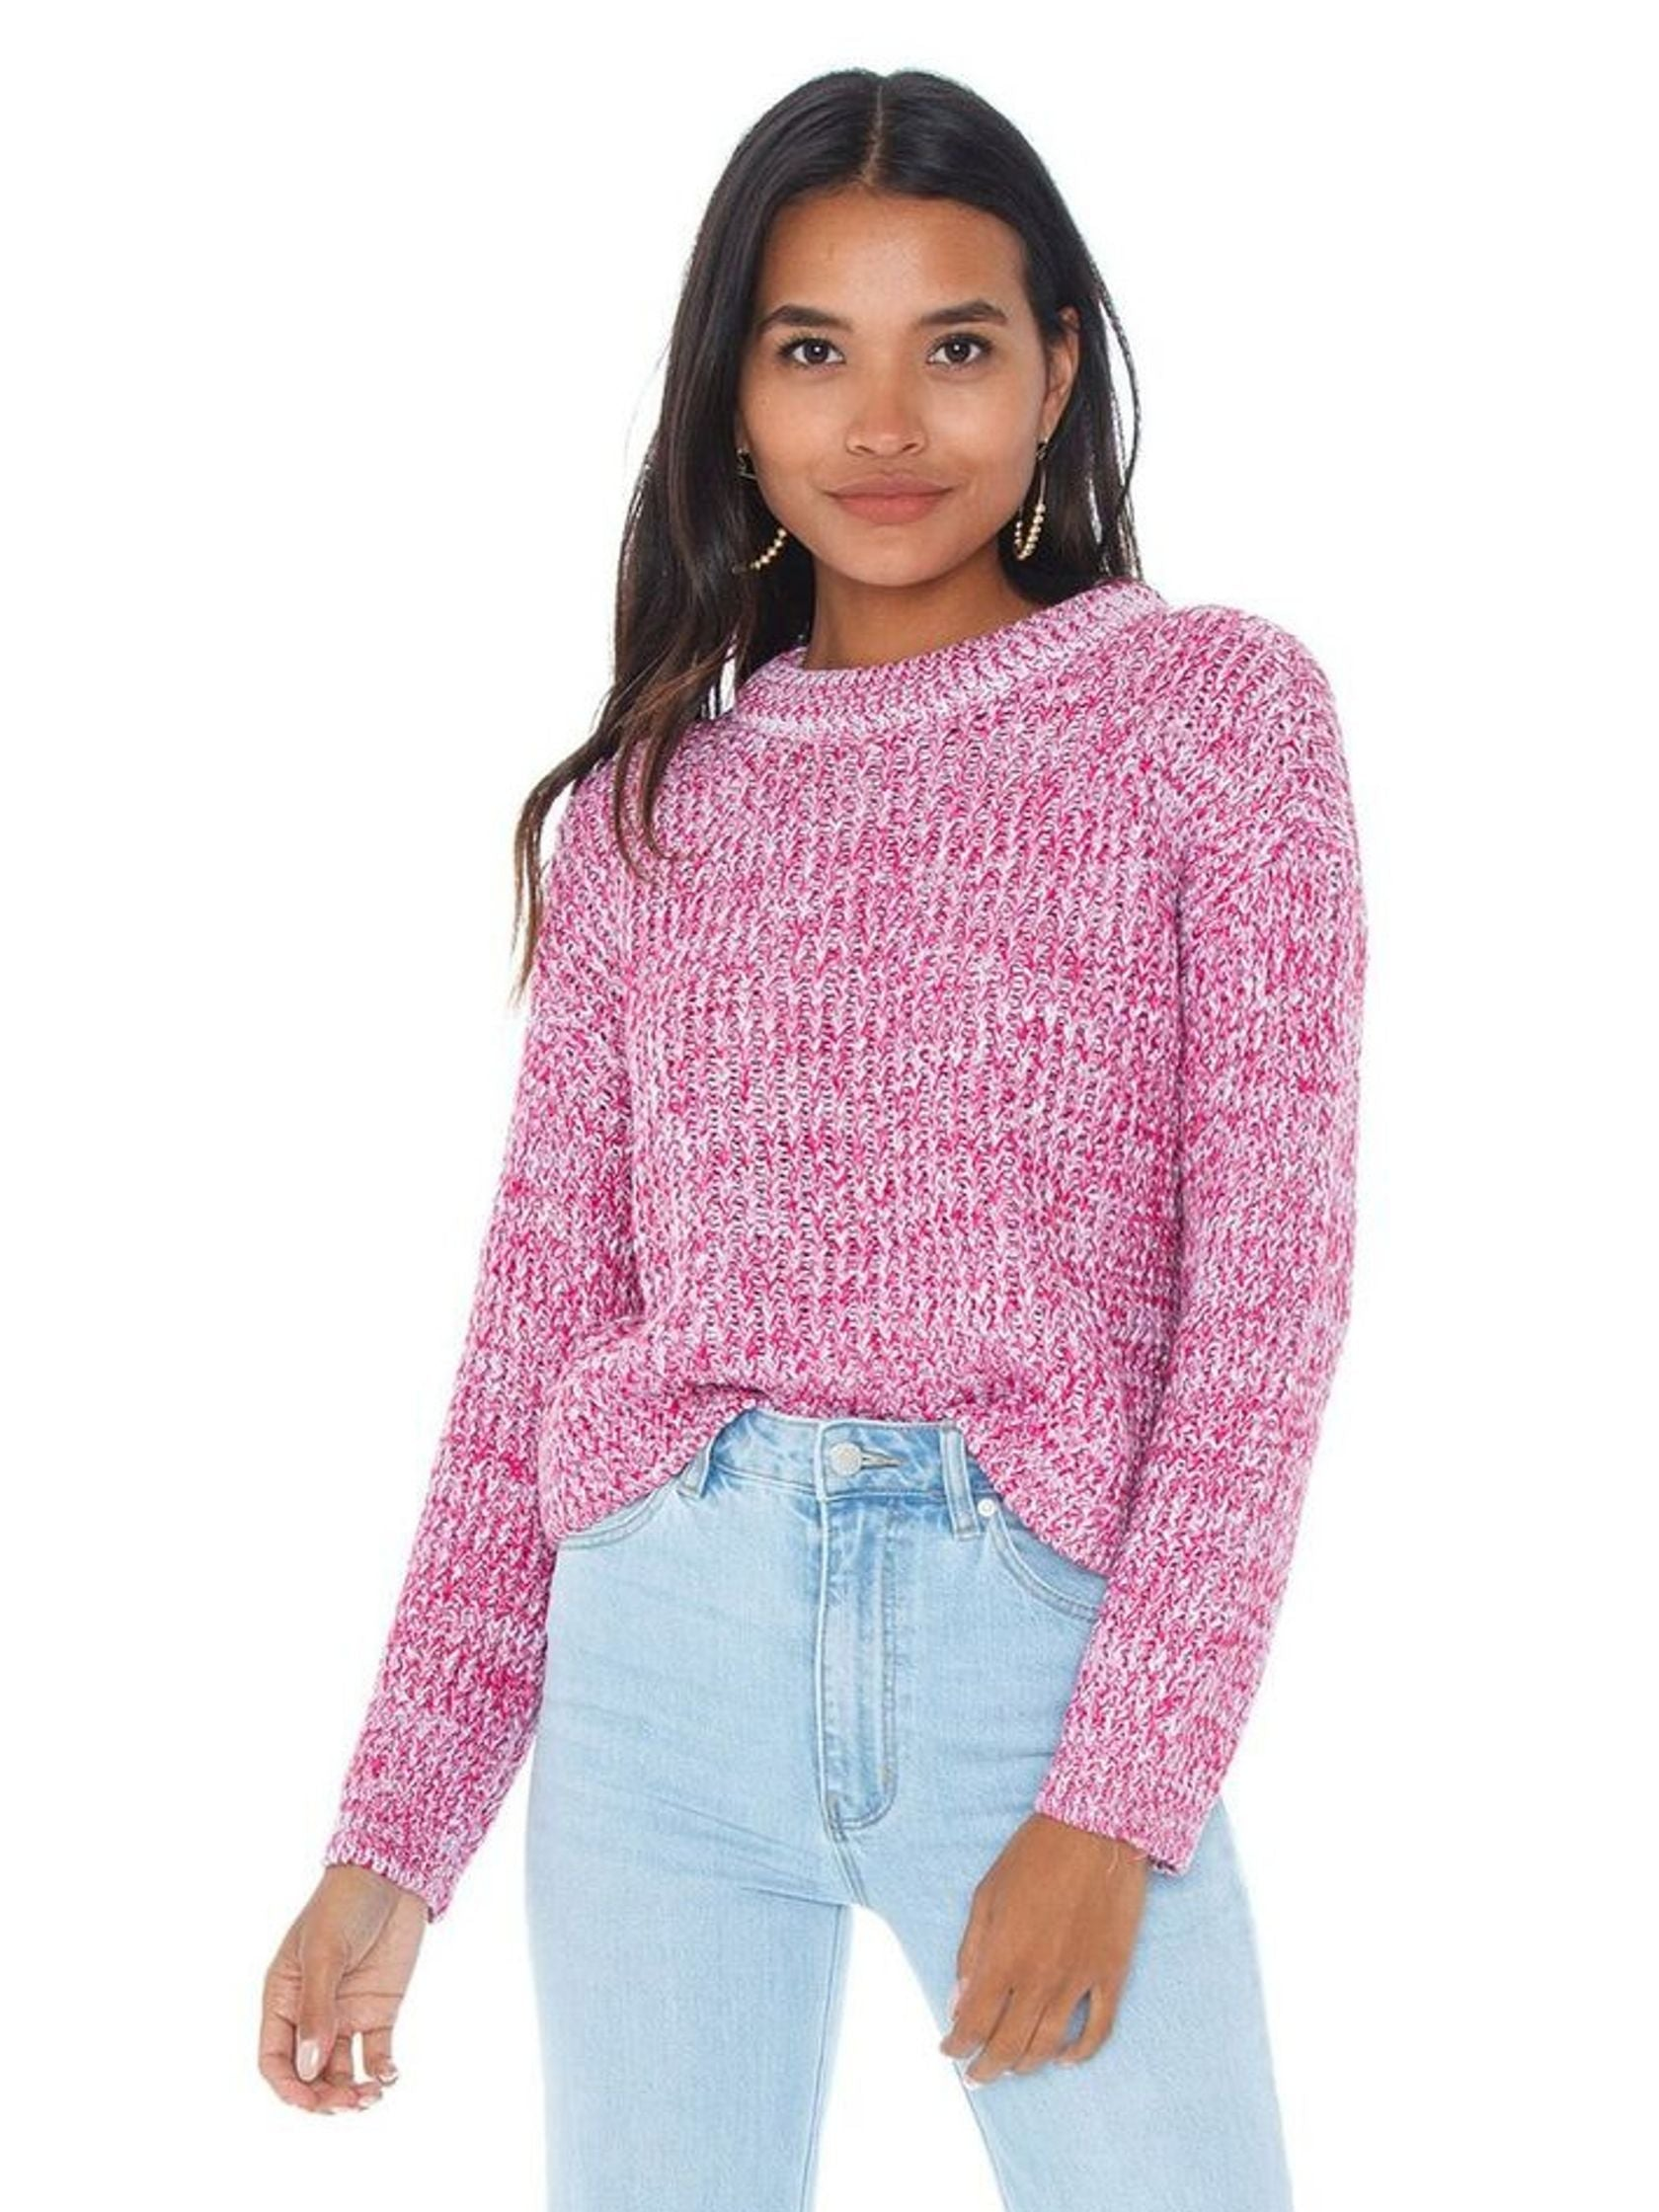 Woman wearing a sweater rental from MINKPINK called Mikaela Knit Jumper